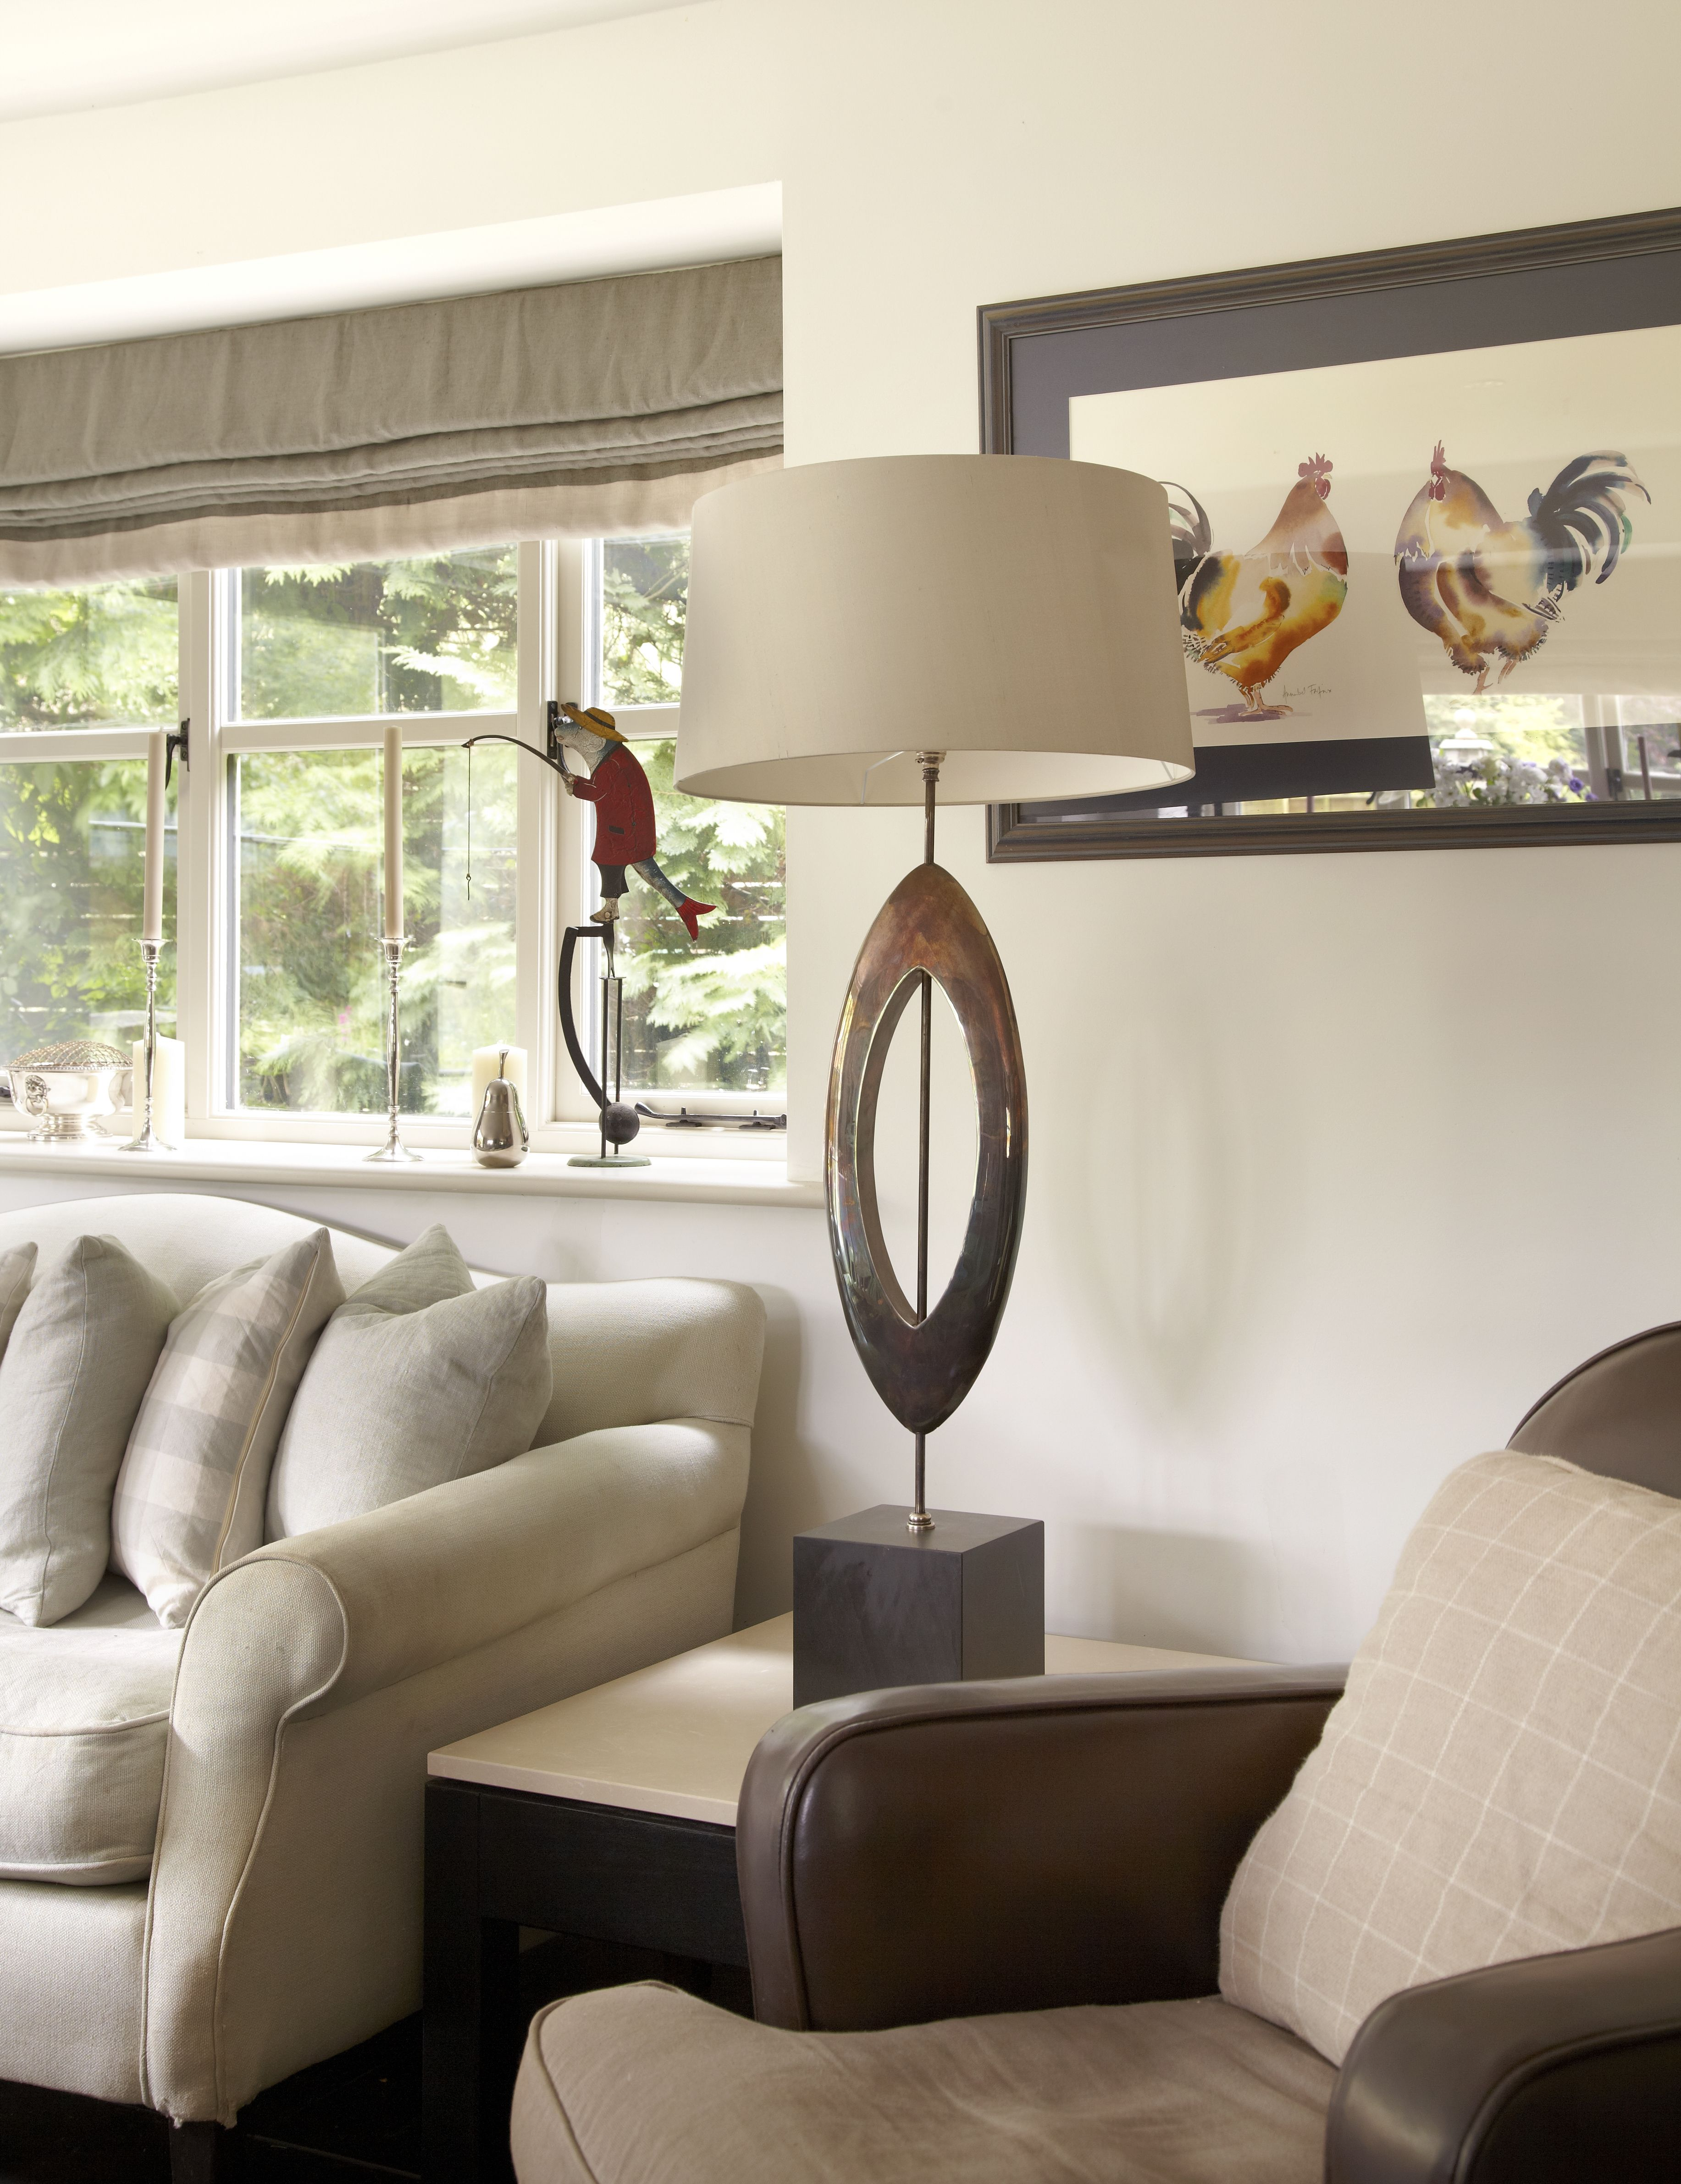 Manhattan Table Lamp By Porta Romana Interior Design Stephanie Dunning At Dorset Country Cottage